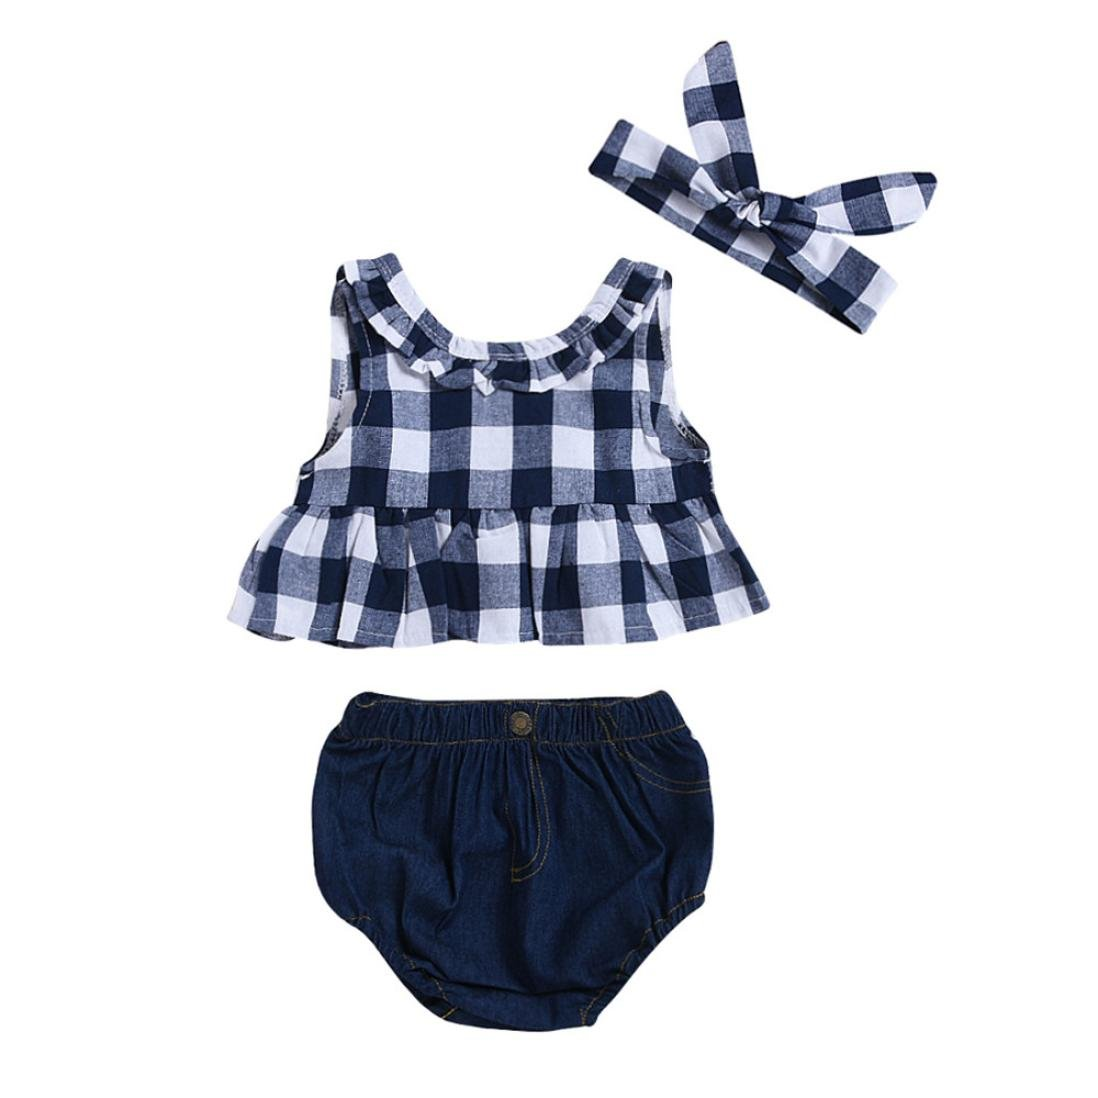 Lurryly Toddler Baby Girl Summer Plaid Skirted T-Shirt Tops+Denim Shorts Clothes Set